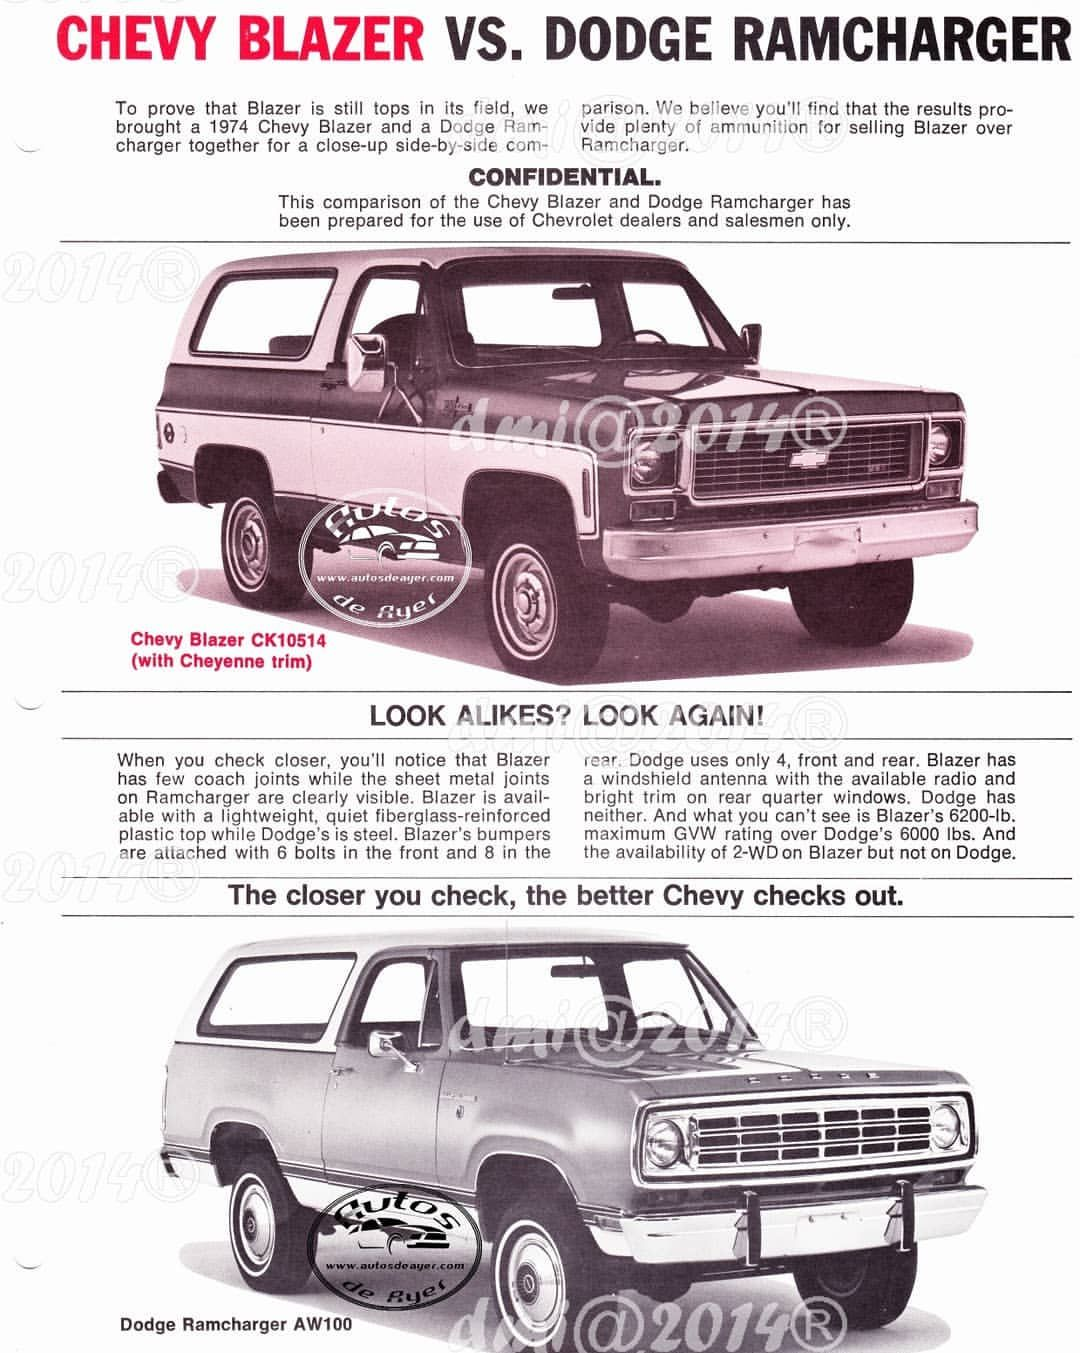 73 Chevrolet Blazer Vs Dodge Ramcharger Material Used For Sellers Of Chevrolet Agencies Chevrolet Chevroletbl Chevrolet Blazer Chevrolet Dodge Ramcharger